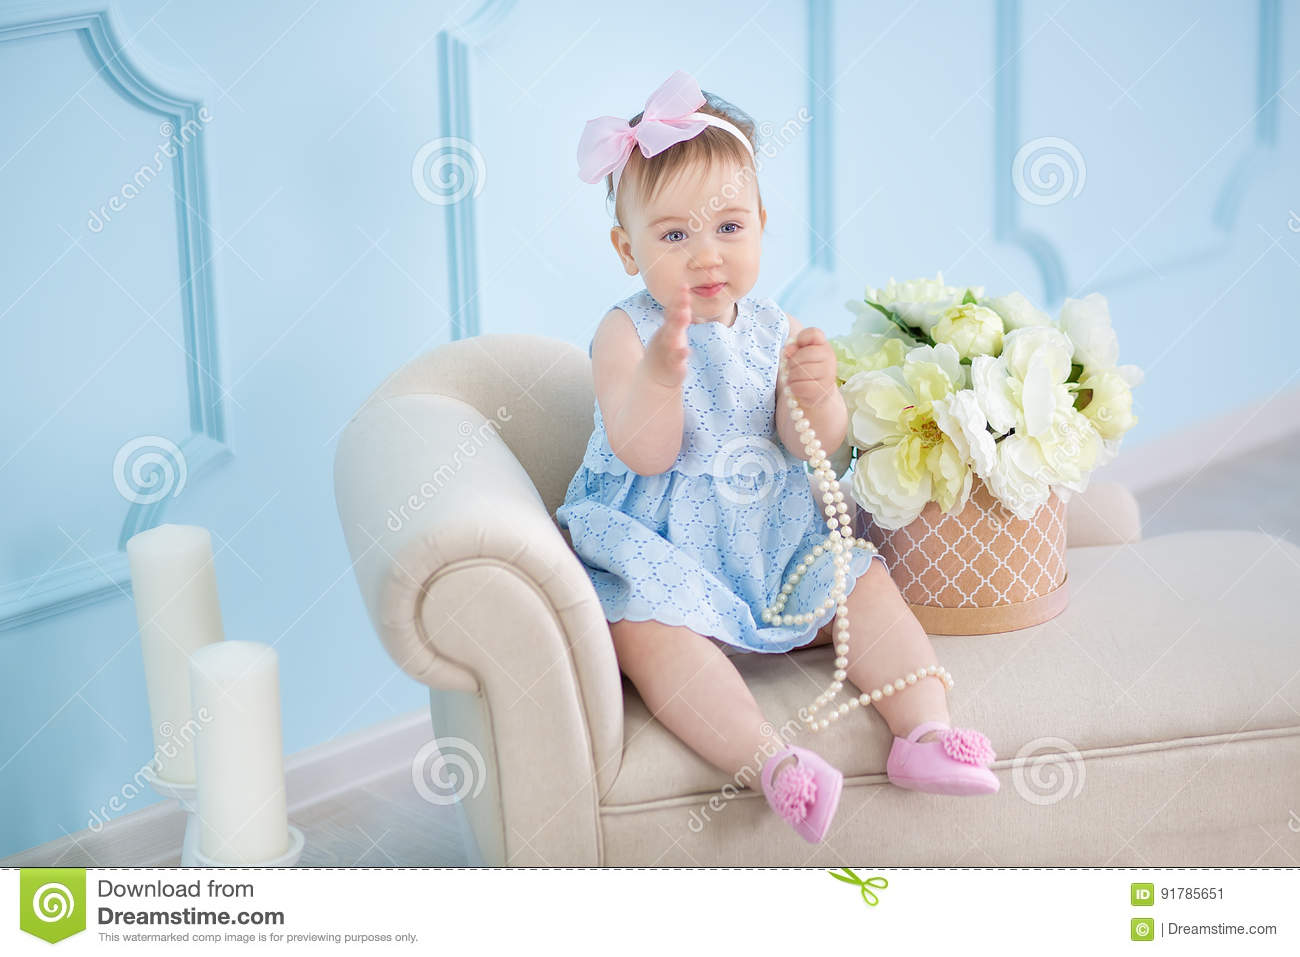 d5a75ea8f Portrait Of A Cute Baby Girl On A Light Background With A Wreath Of ...